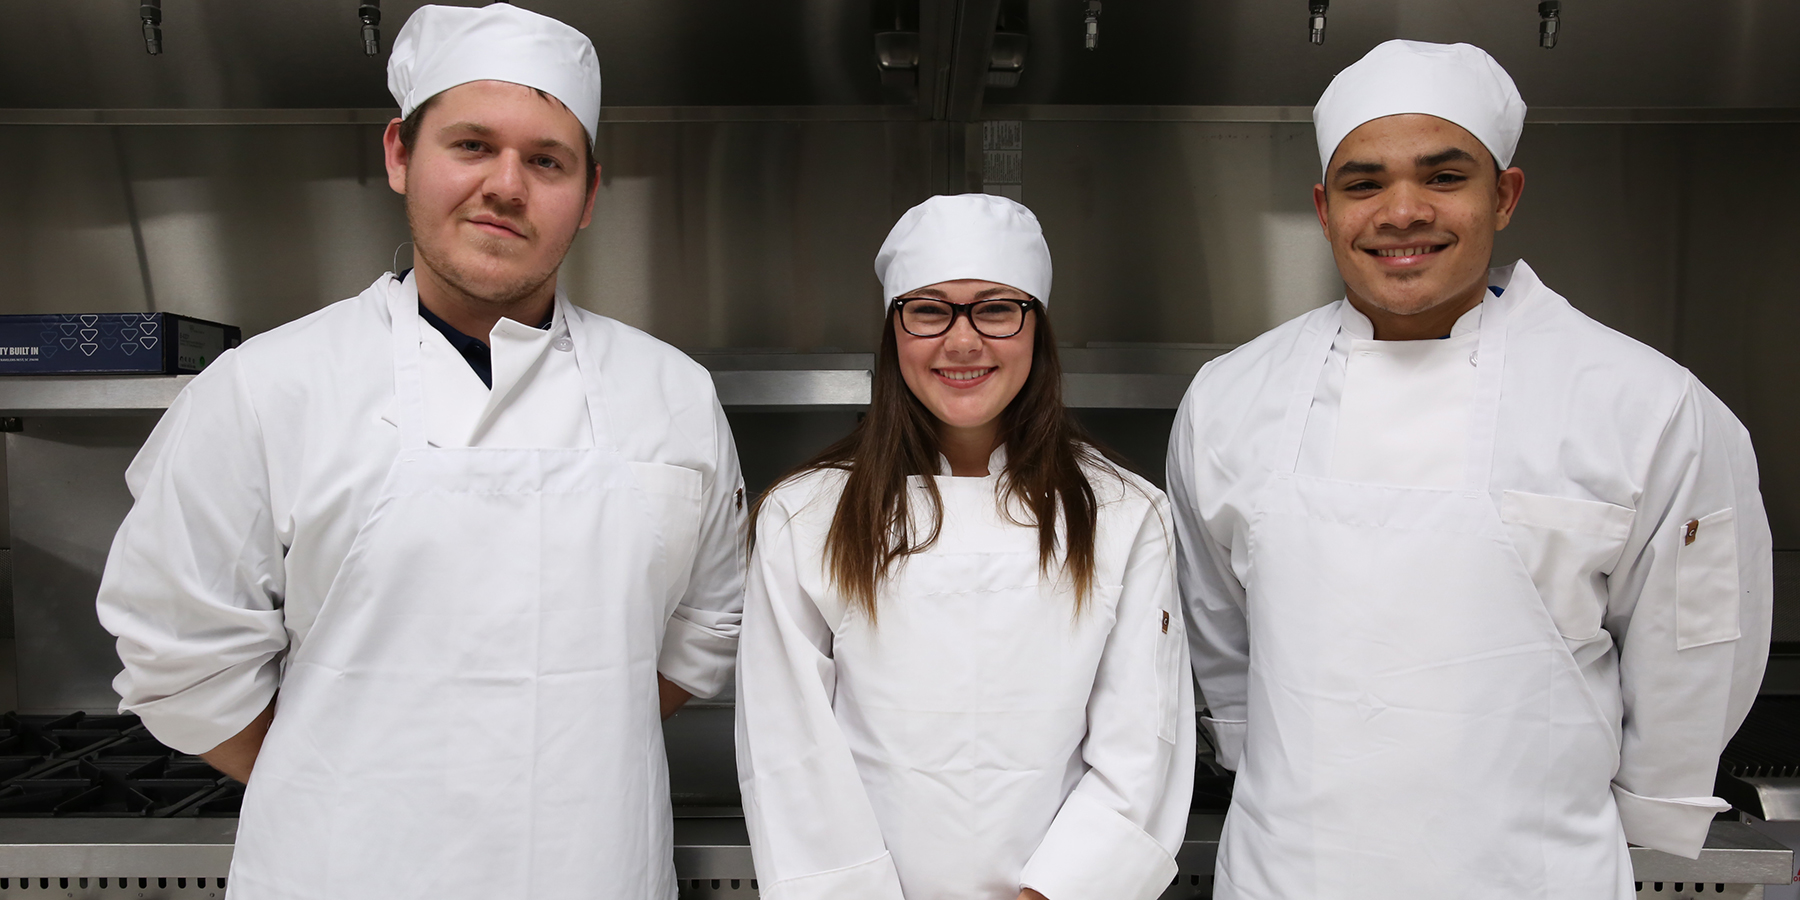 ICC Culinary Arts Students